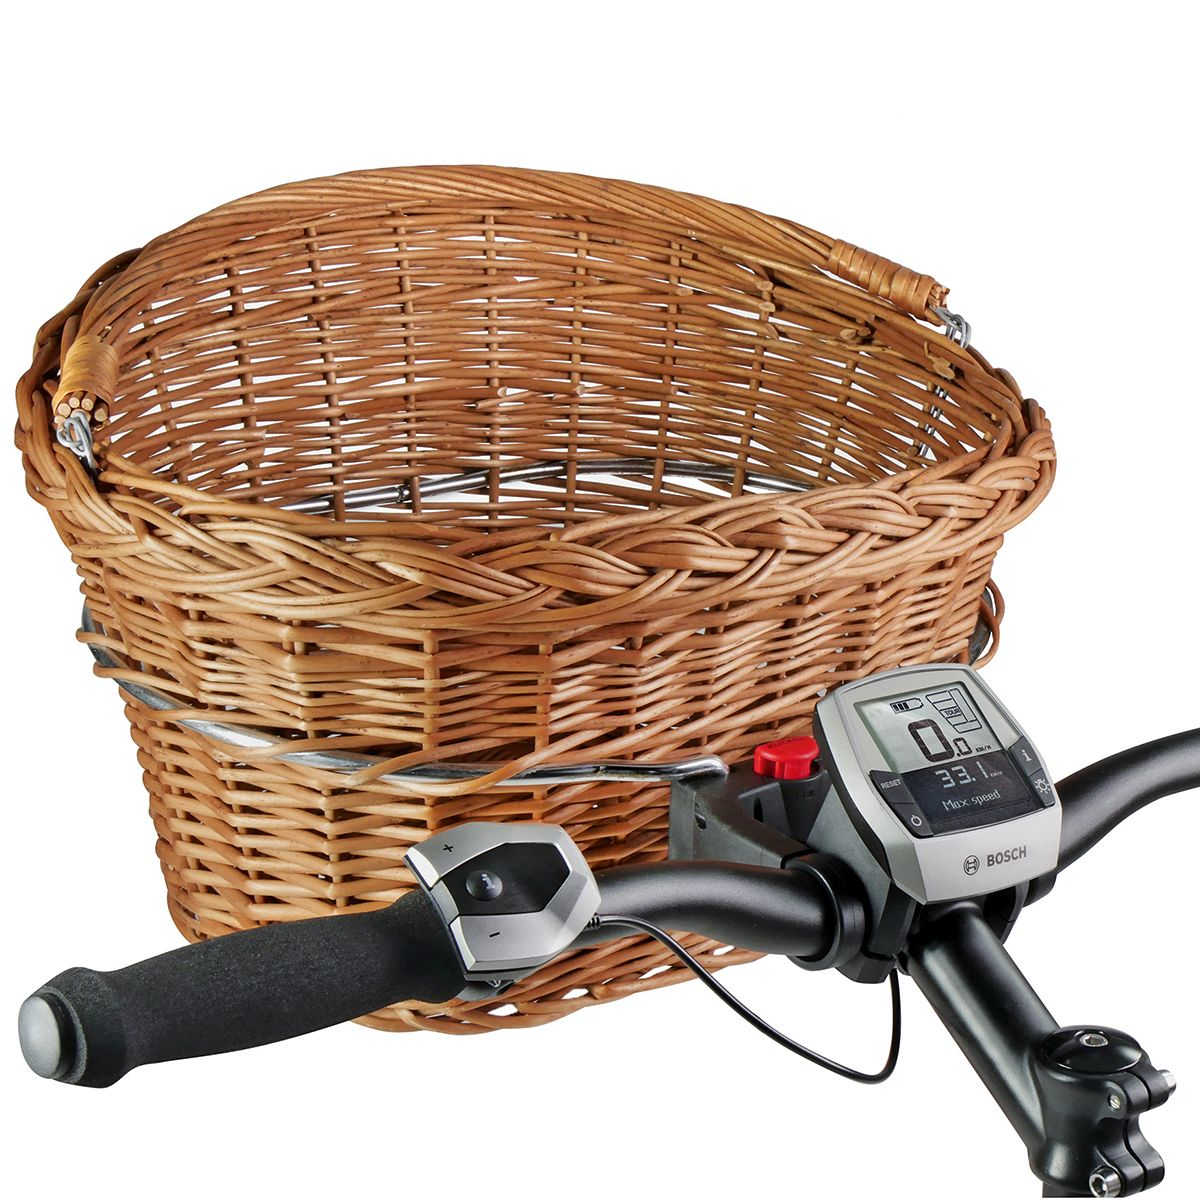 WEIDENKORB front bicycle basket